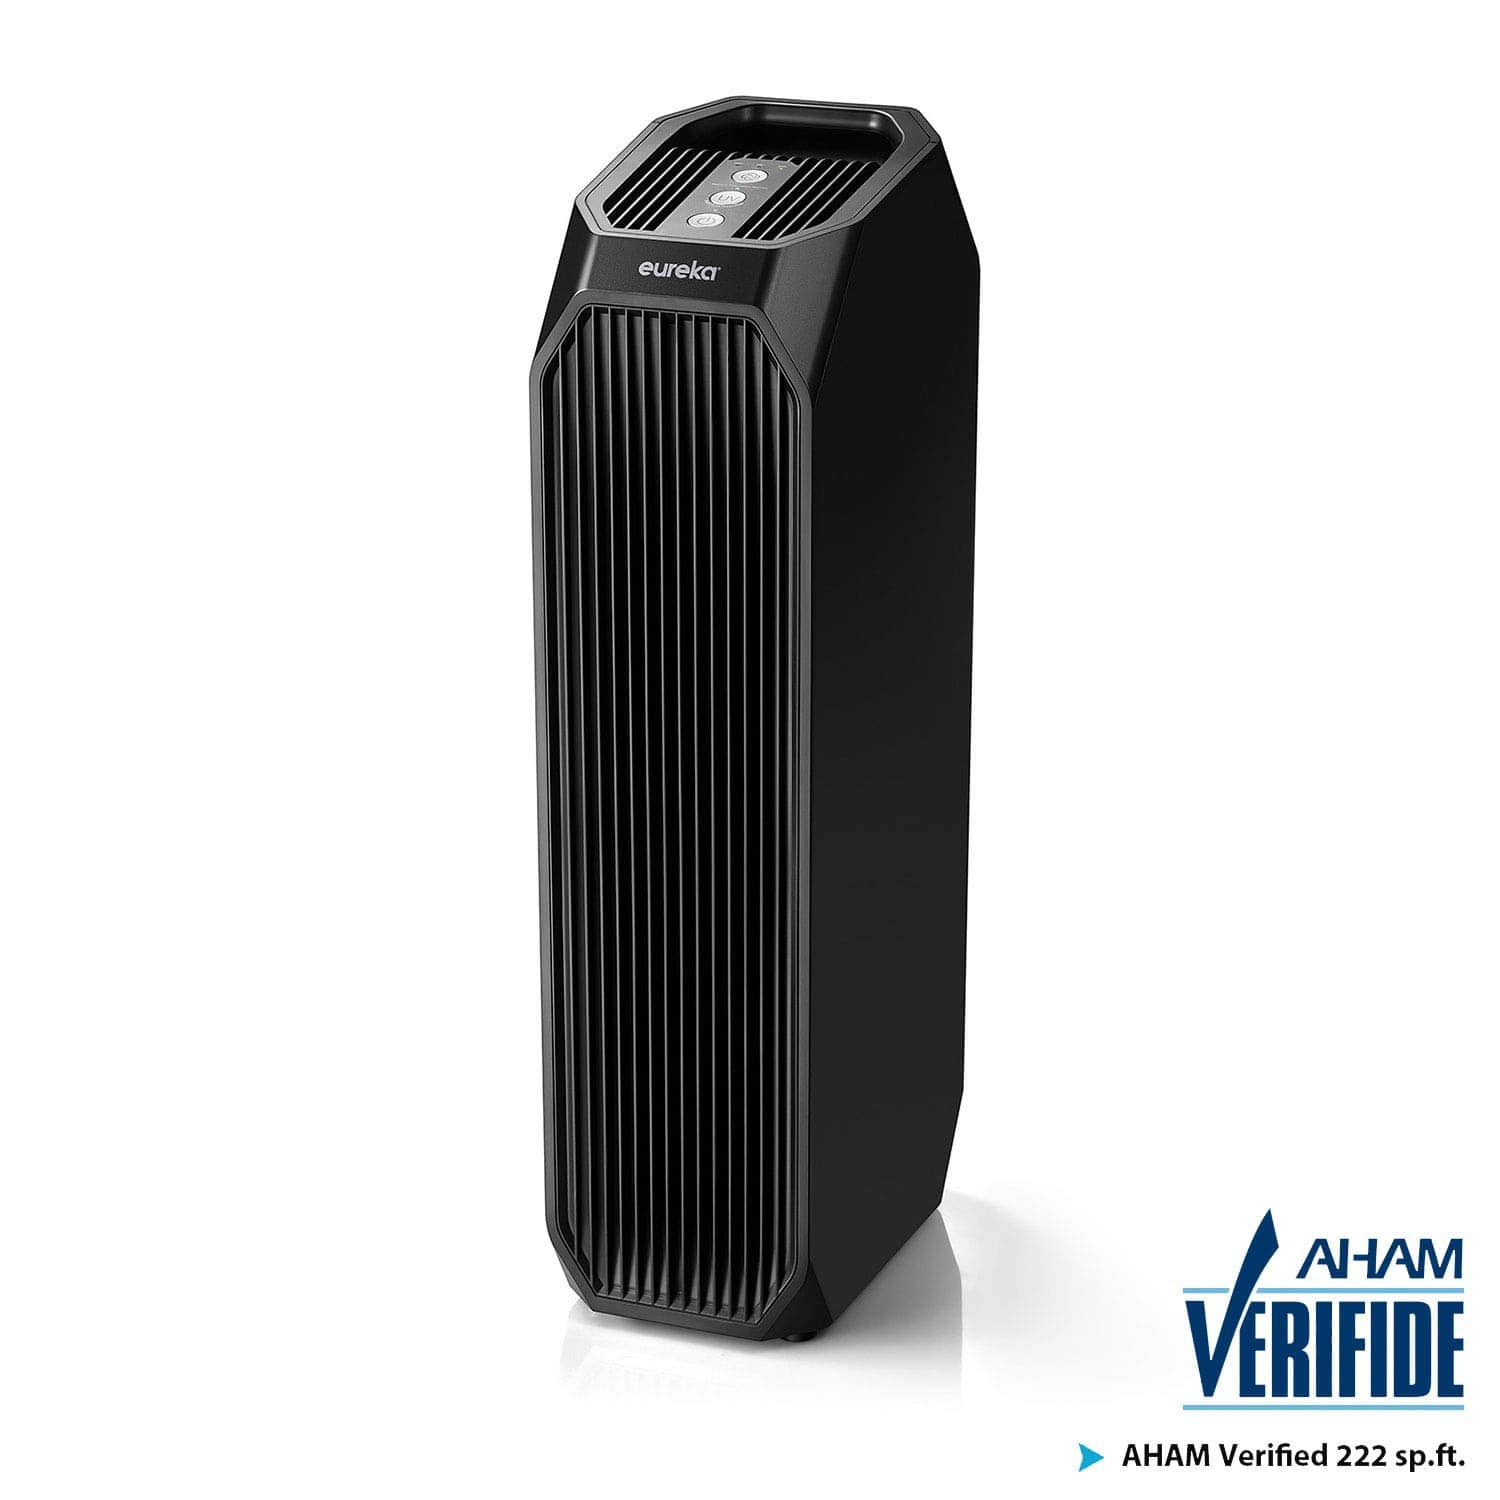 Eureka Instant Clear 26' NEA120 Purifier, 3-in-1 True HEPA Air Cleaner with Carbon Activated Filter and UV LED $54.99